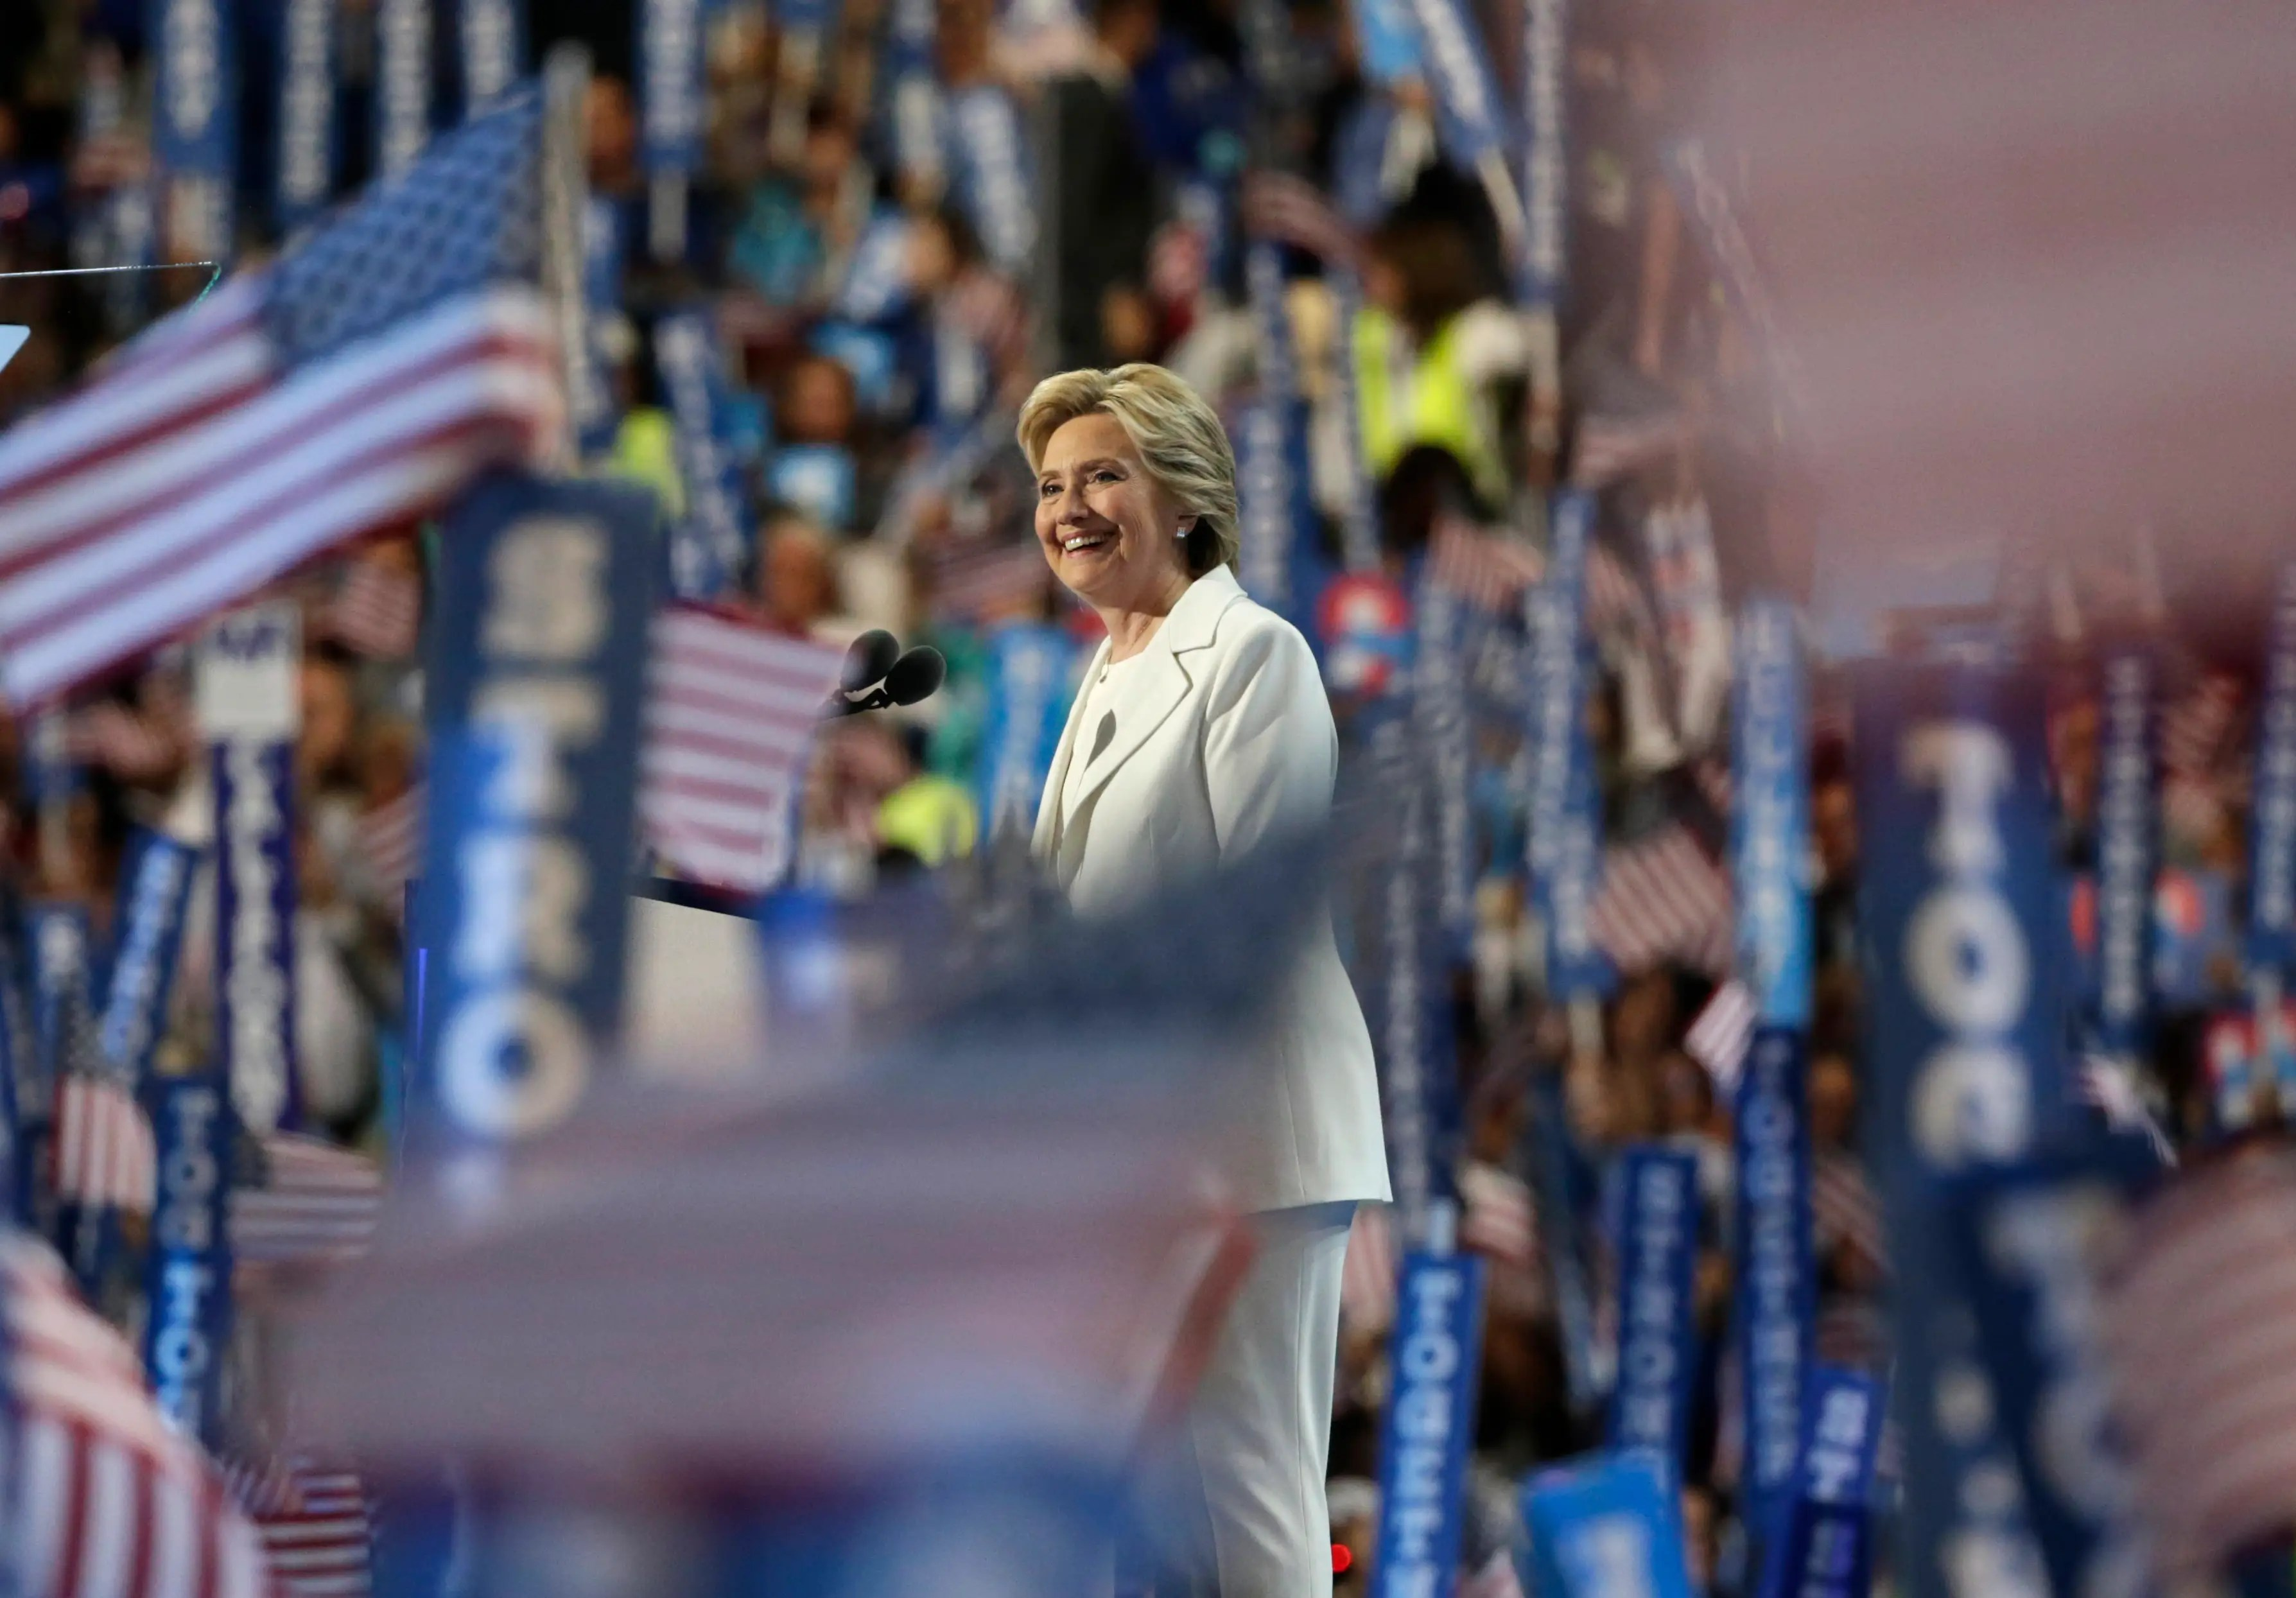 In July, Clinton accepted the Democratic Party's nomination for president in Philadelphia, becoming the first female nominee of a major party.